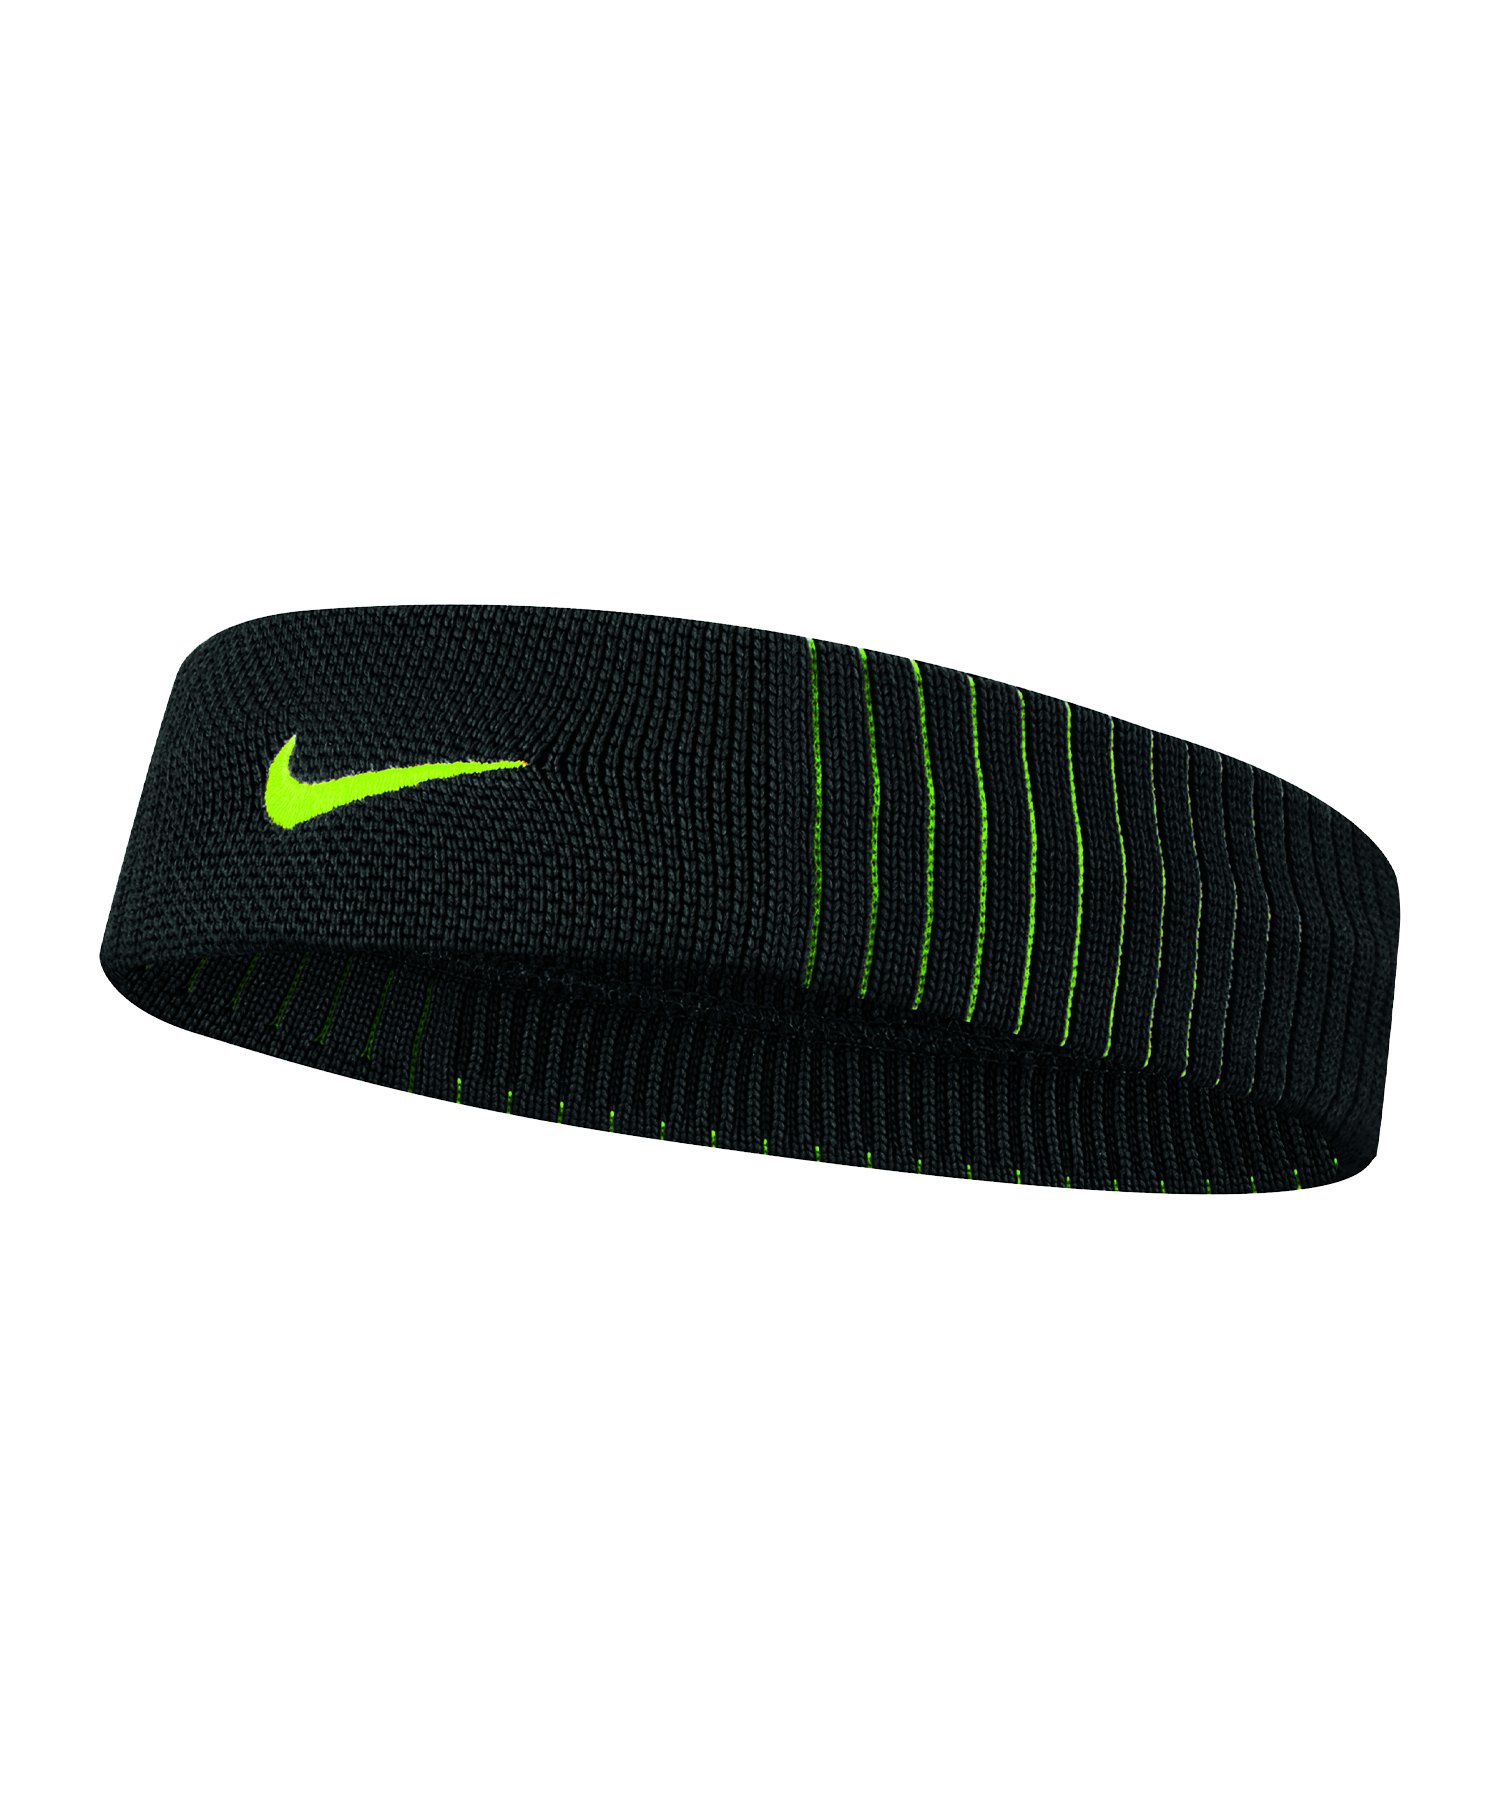 Nike DRI-Fit Reveal Stirnband F085 - schwarz